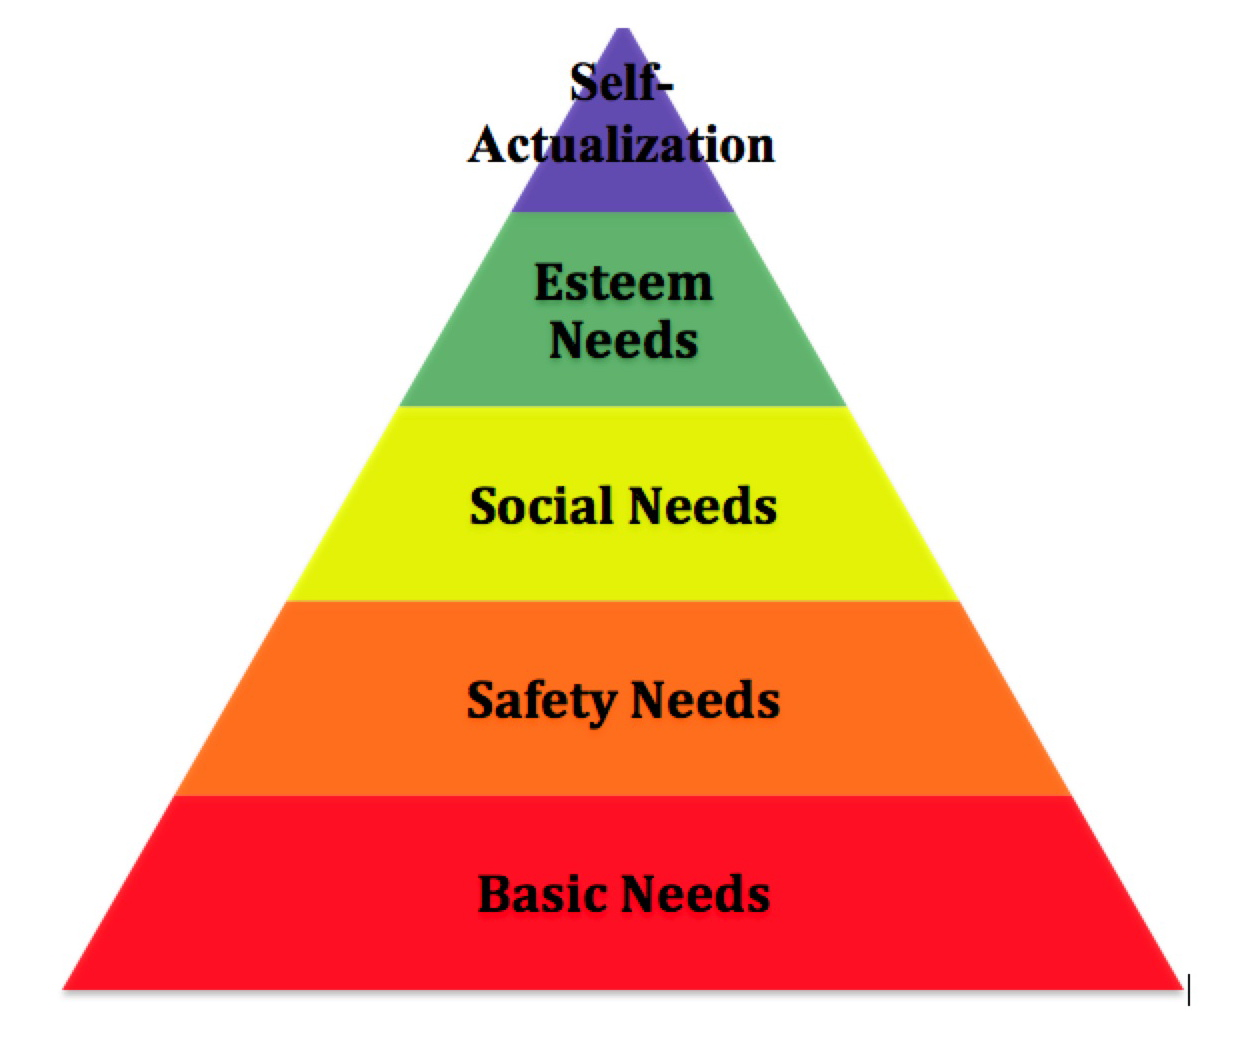 What Are Some Advantages and Disadvantages of Maslow's Hierarchy of Needs?